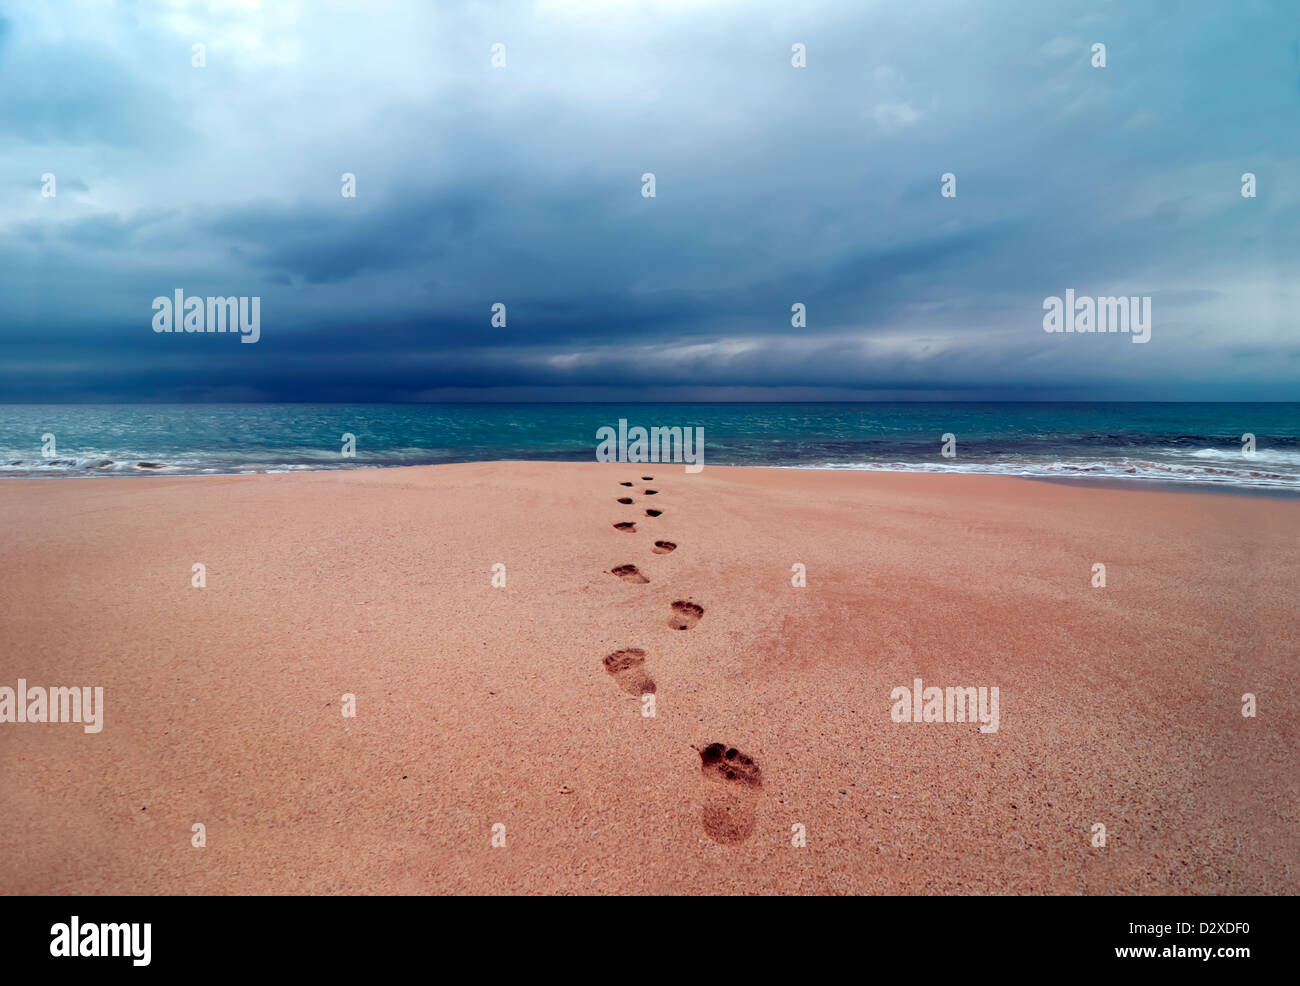 Big storm with clouds over footprints in soft sand leading into the ocean, Papohaku Beach, Molokai, Hawaii, USA, - Stock Image